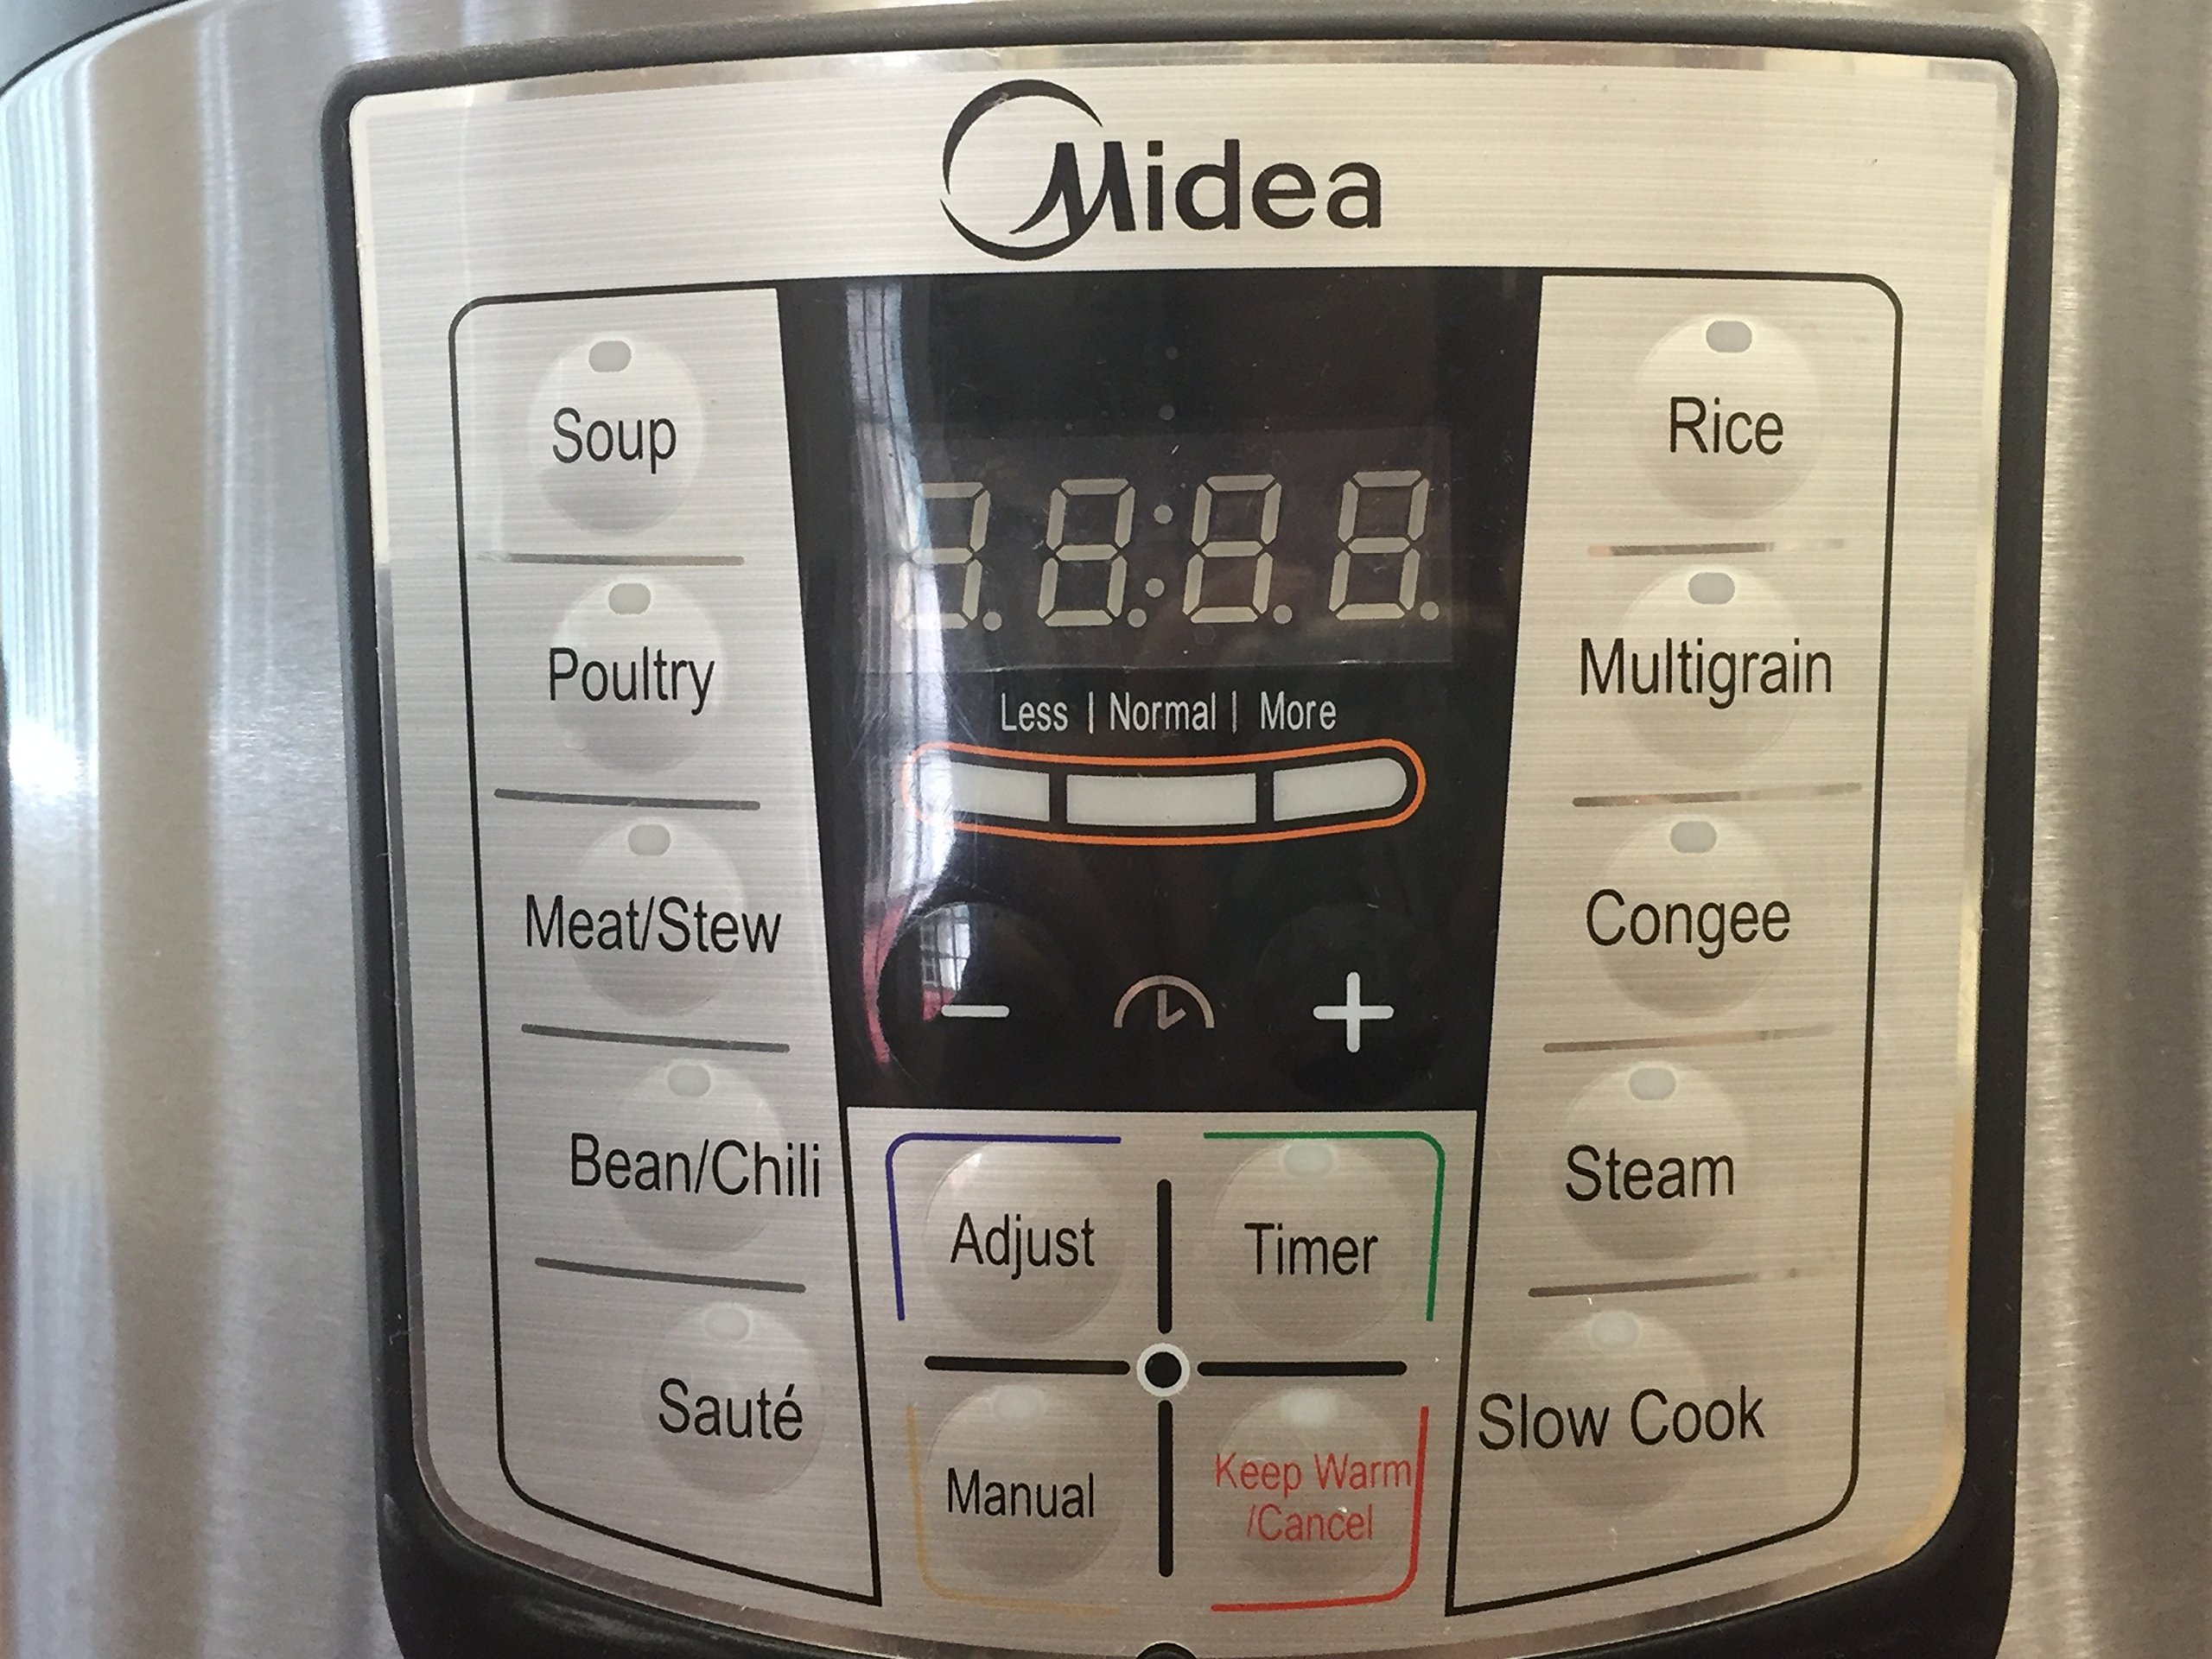 MIDEA 6 Qt 6 in 1 Programmable Electric Pressure Cooker, Meat/Stew, Poultry, Steam, Slow Cook, Rice, Beans/Chili, Congee, Soup, Multi Grain, Sauté by MIDEA (Image #1)